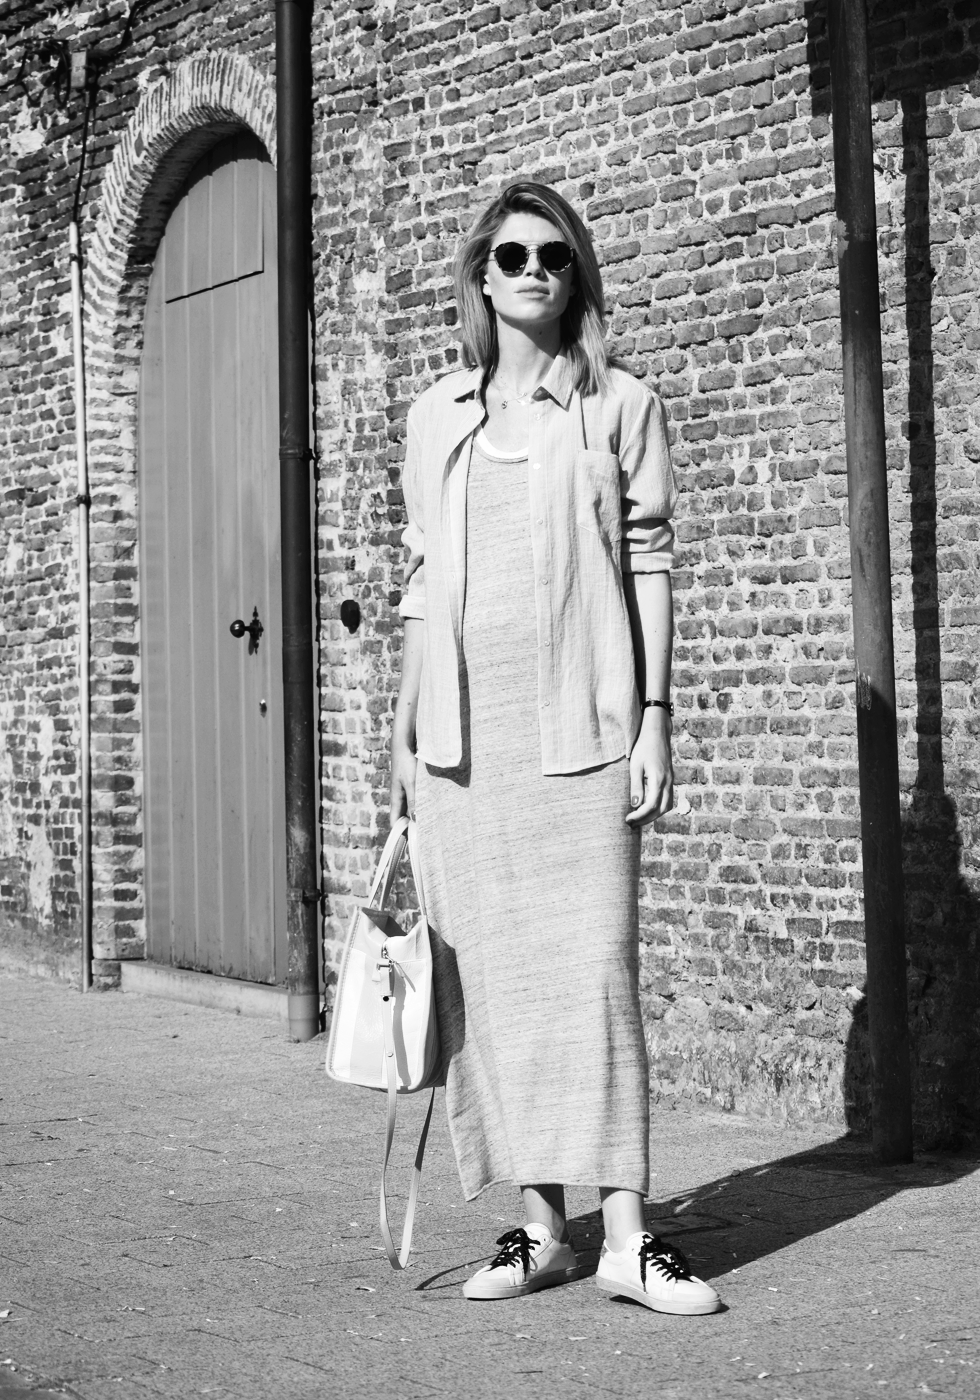 Outfit of the day, Saint Laurent, Céline, Dewolf, American Vintage, Liv The Label, Balenciaga, Anne Zellien, Minitials, Tiffany Co, ootd, style, fashion, blogger, pregnant, maxi dress, maternity